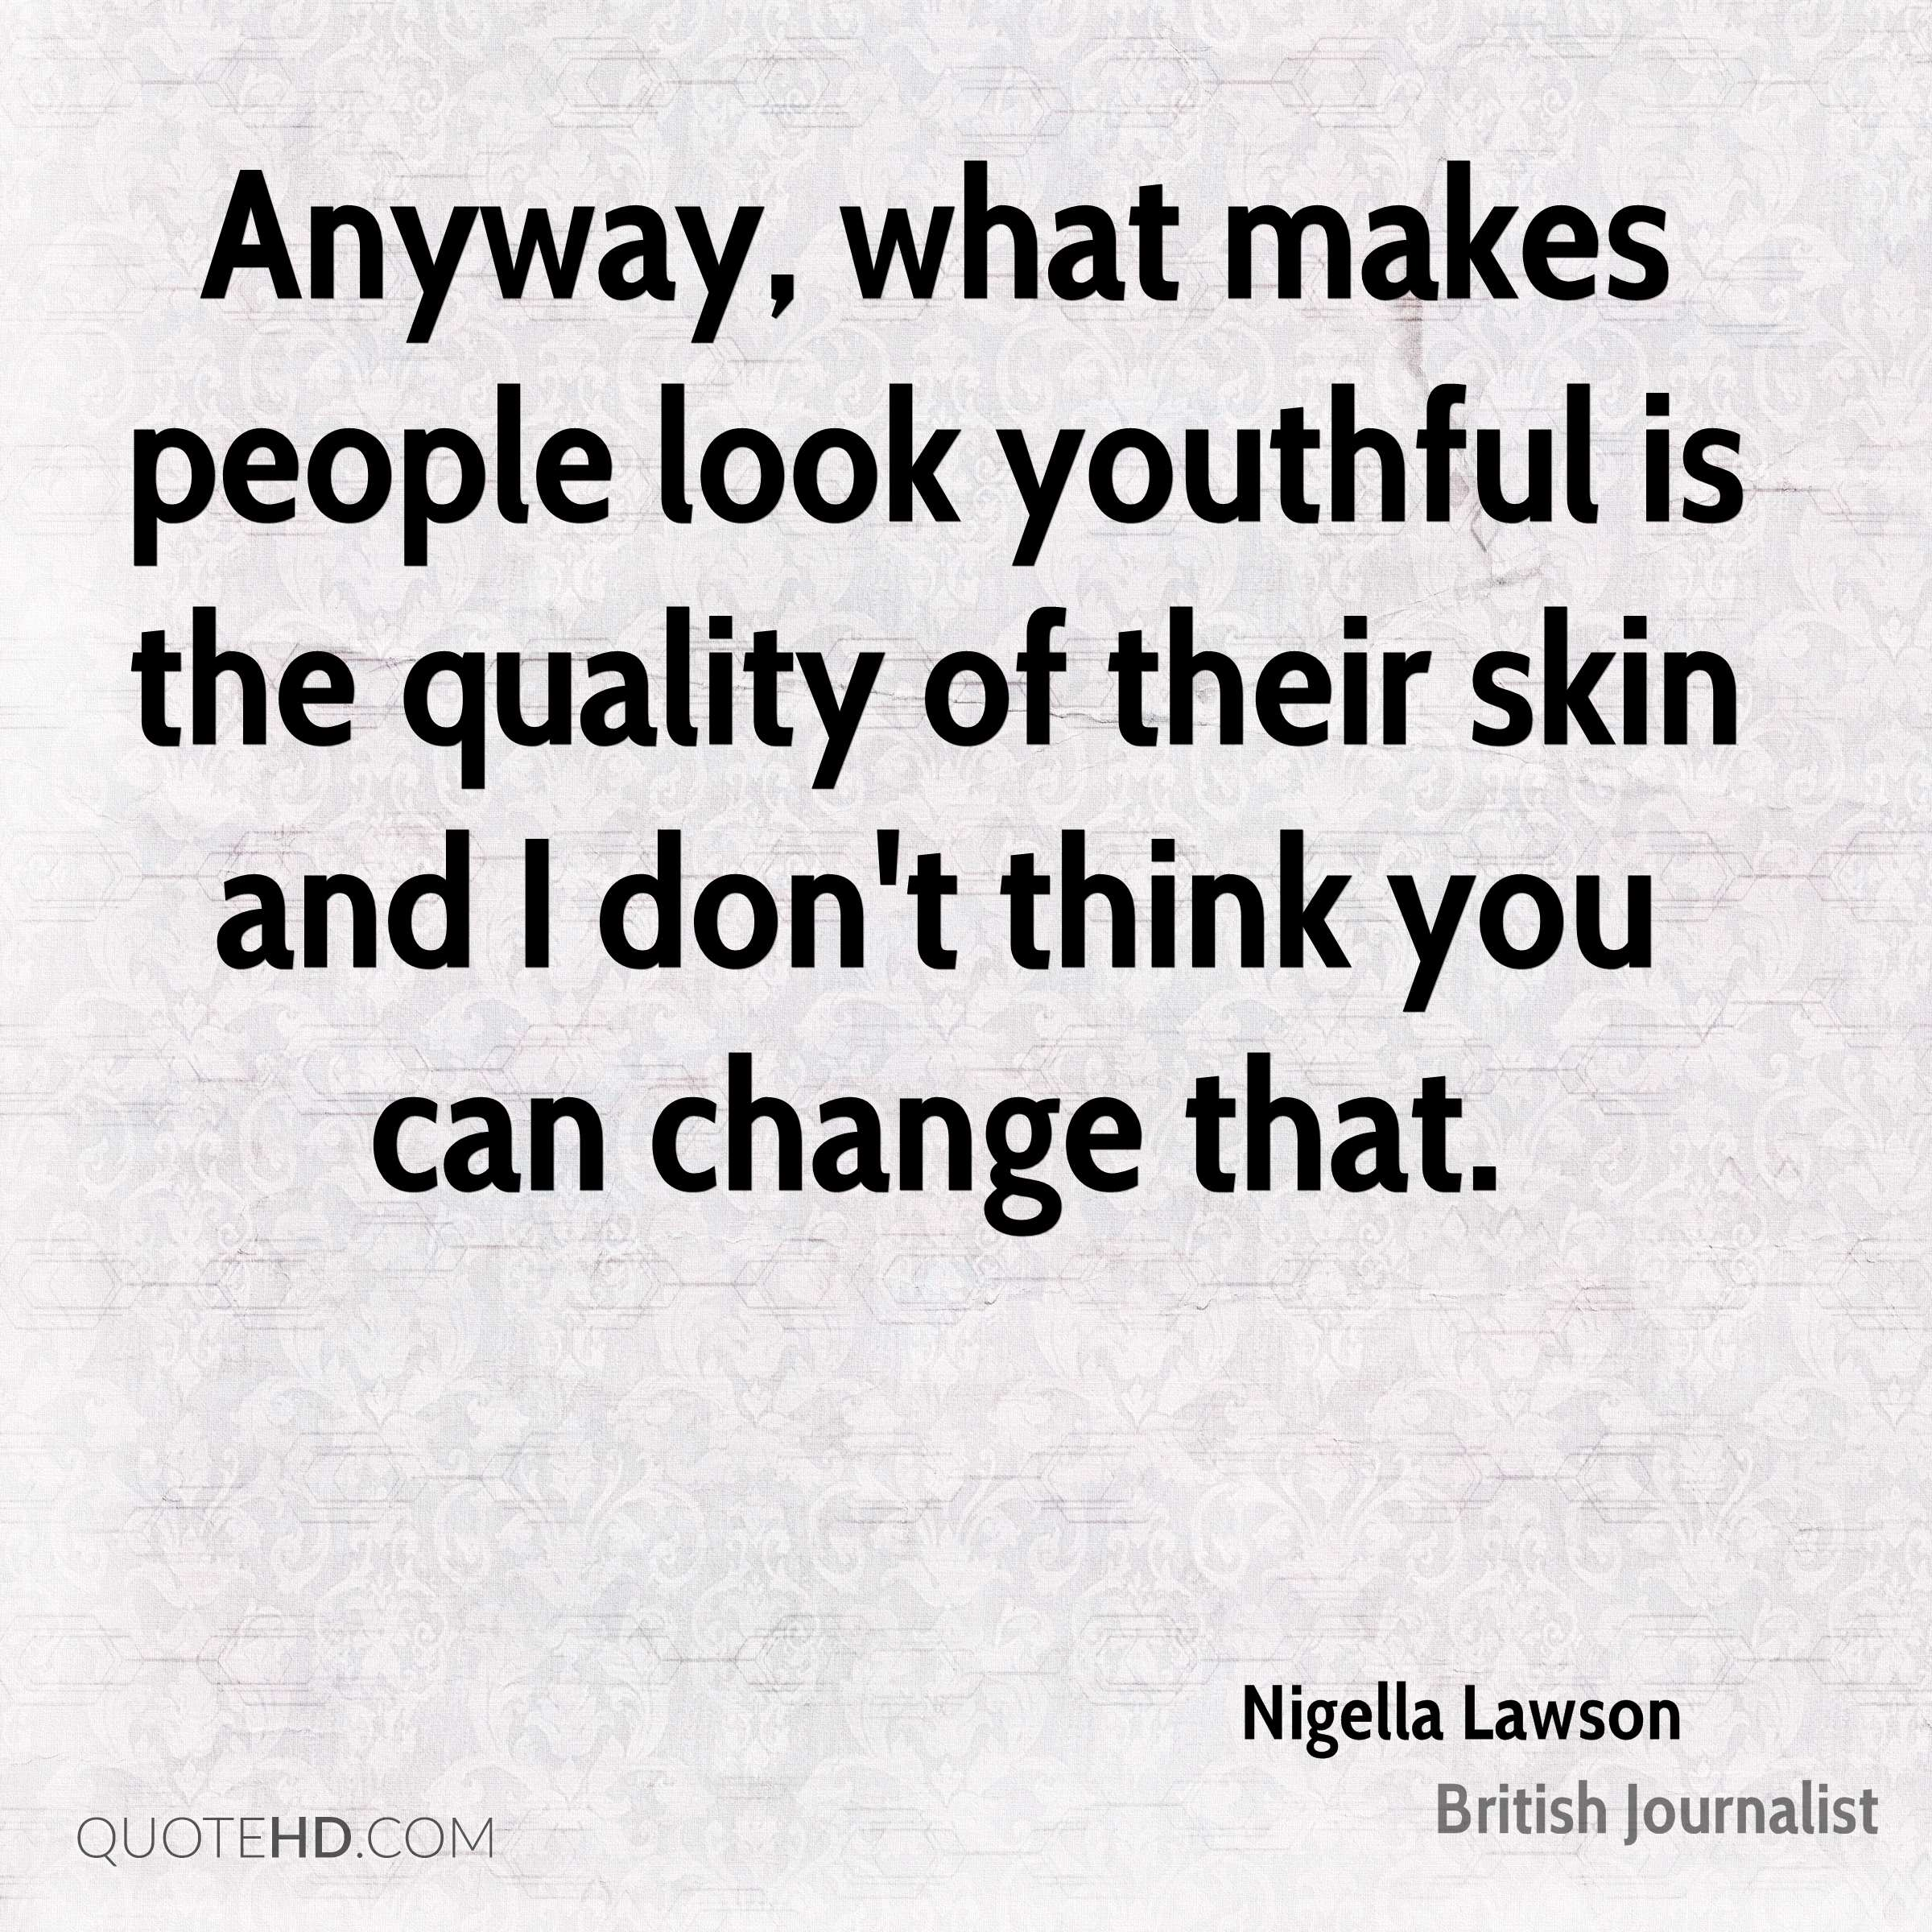 Anyway, what makes people look youthful is the quality of their skin and I don't think you can change that.